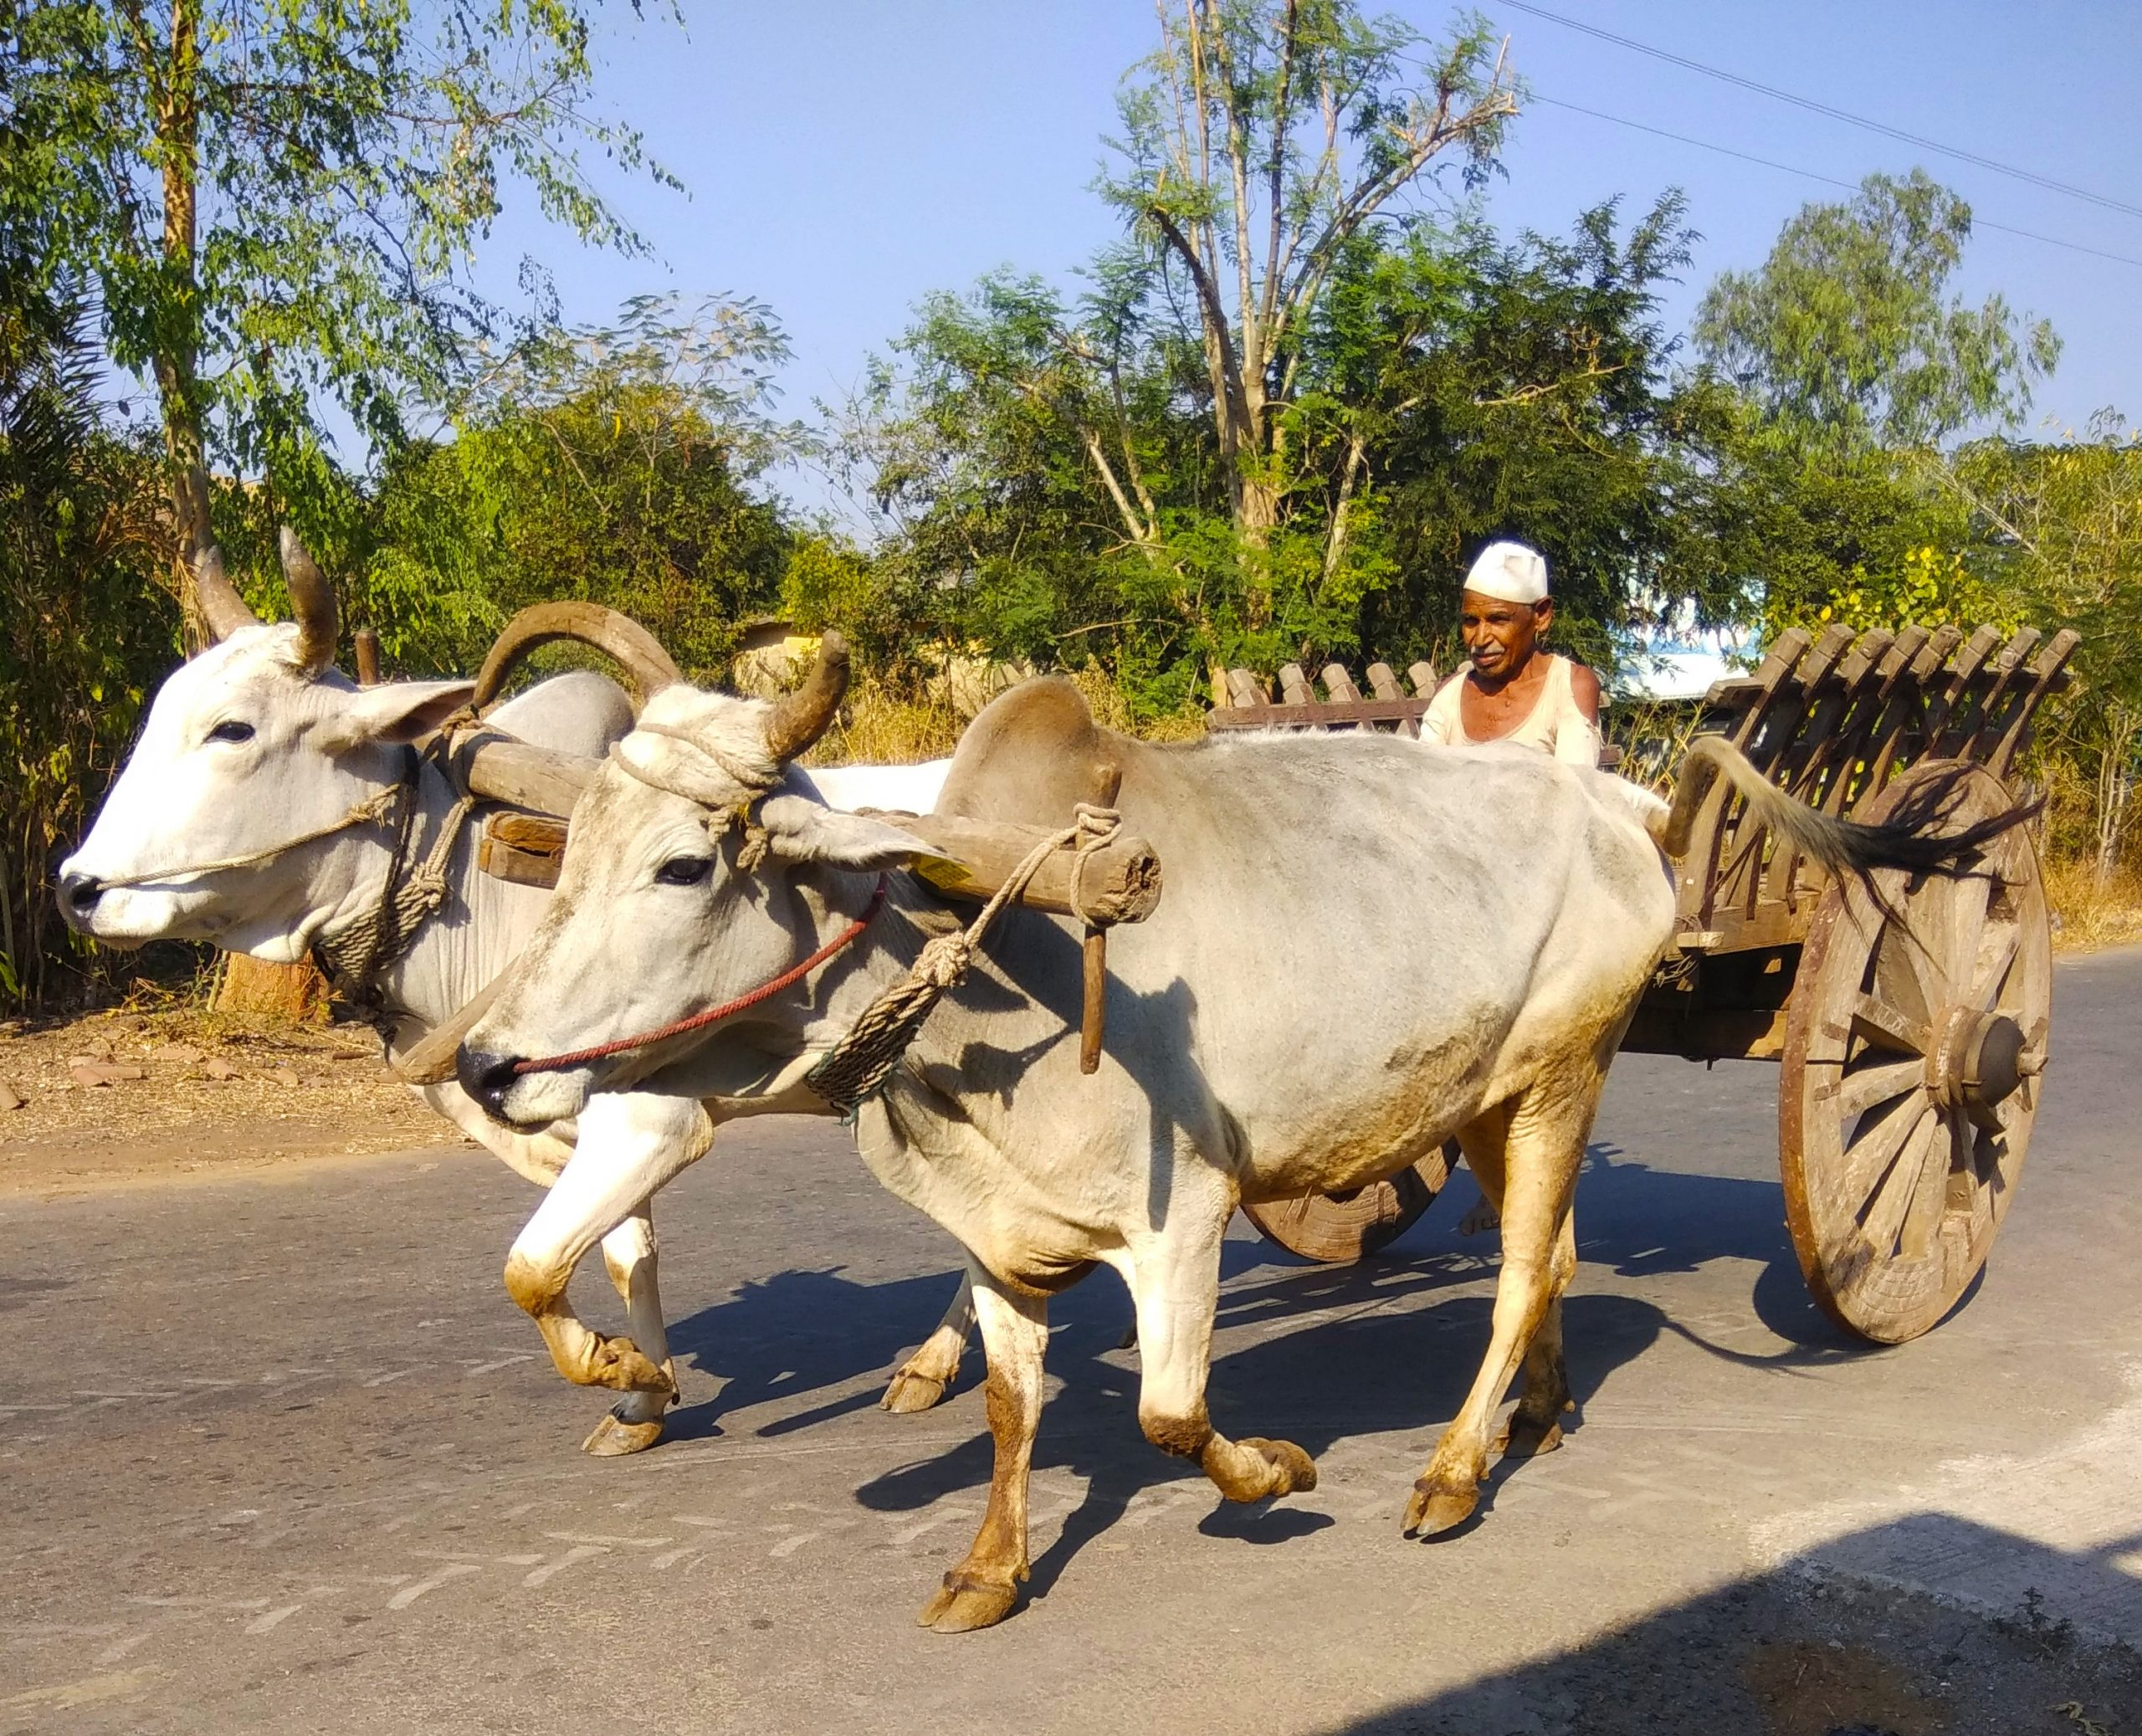 A farmer with oxcart